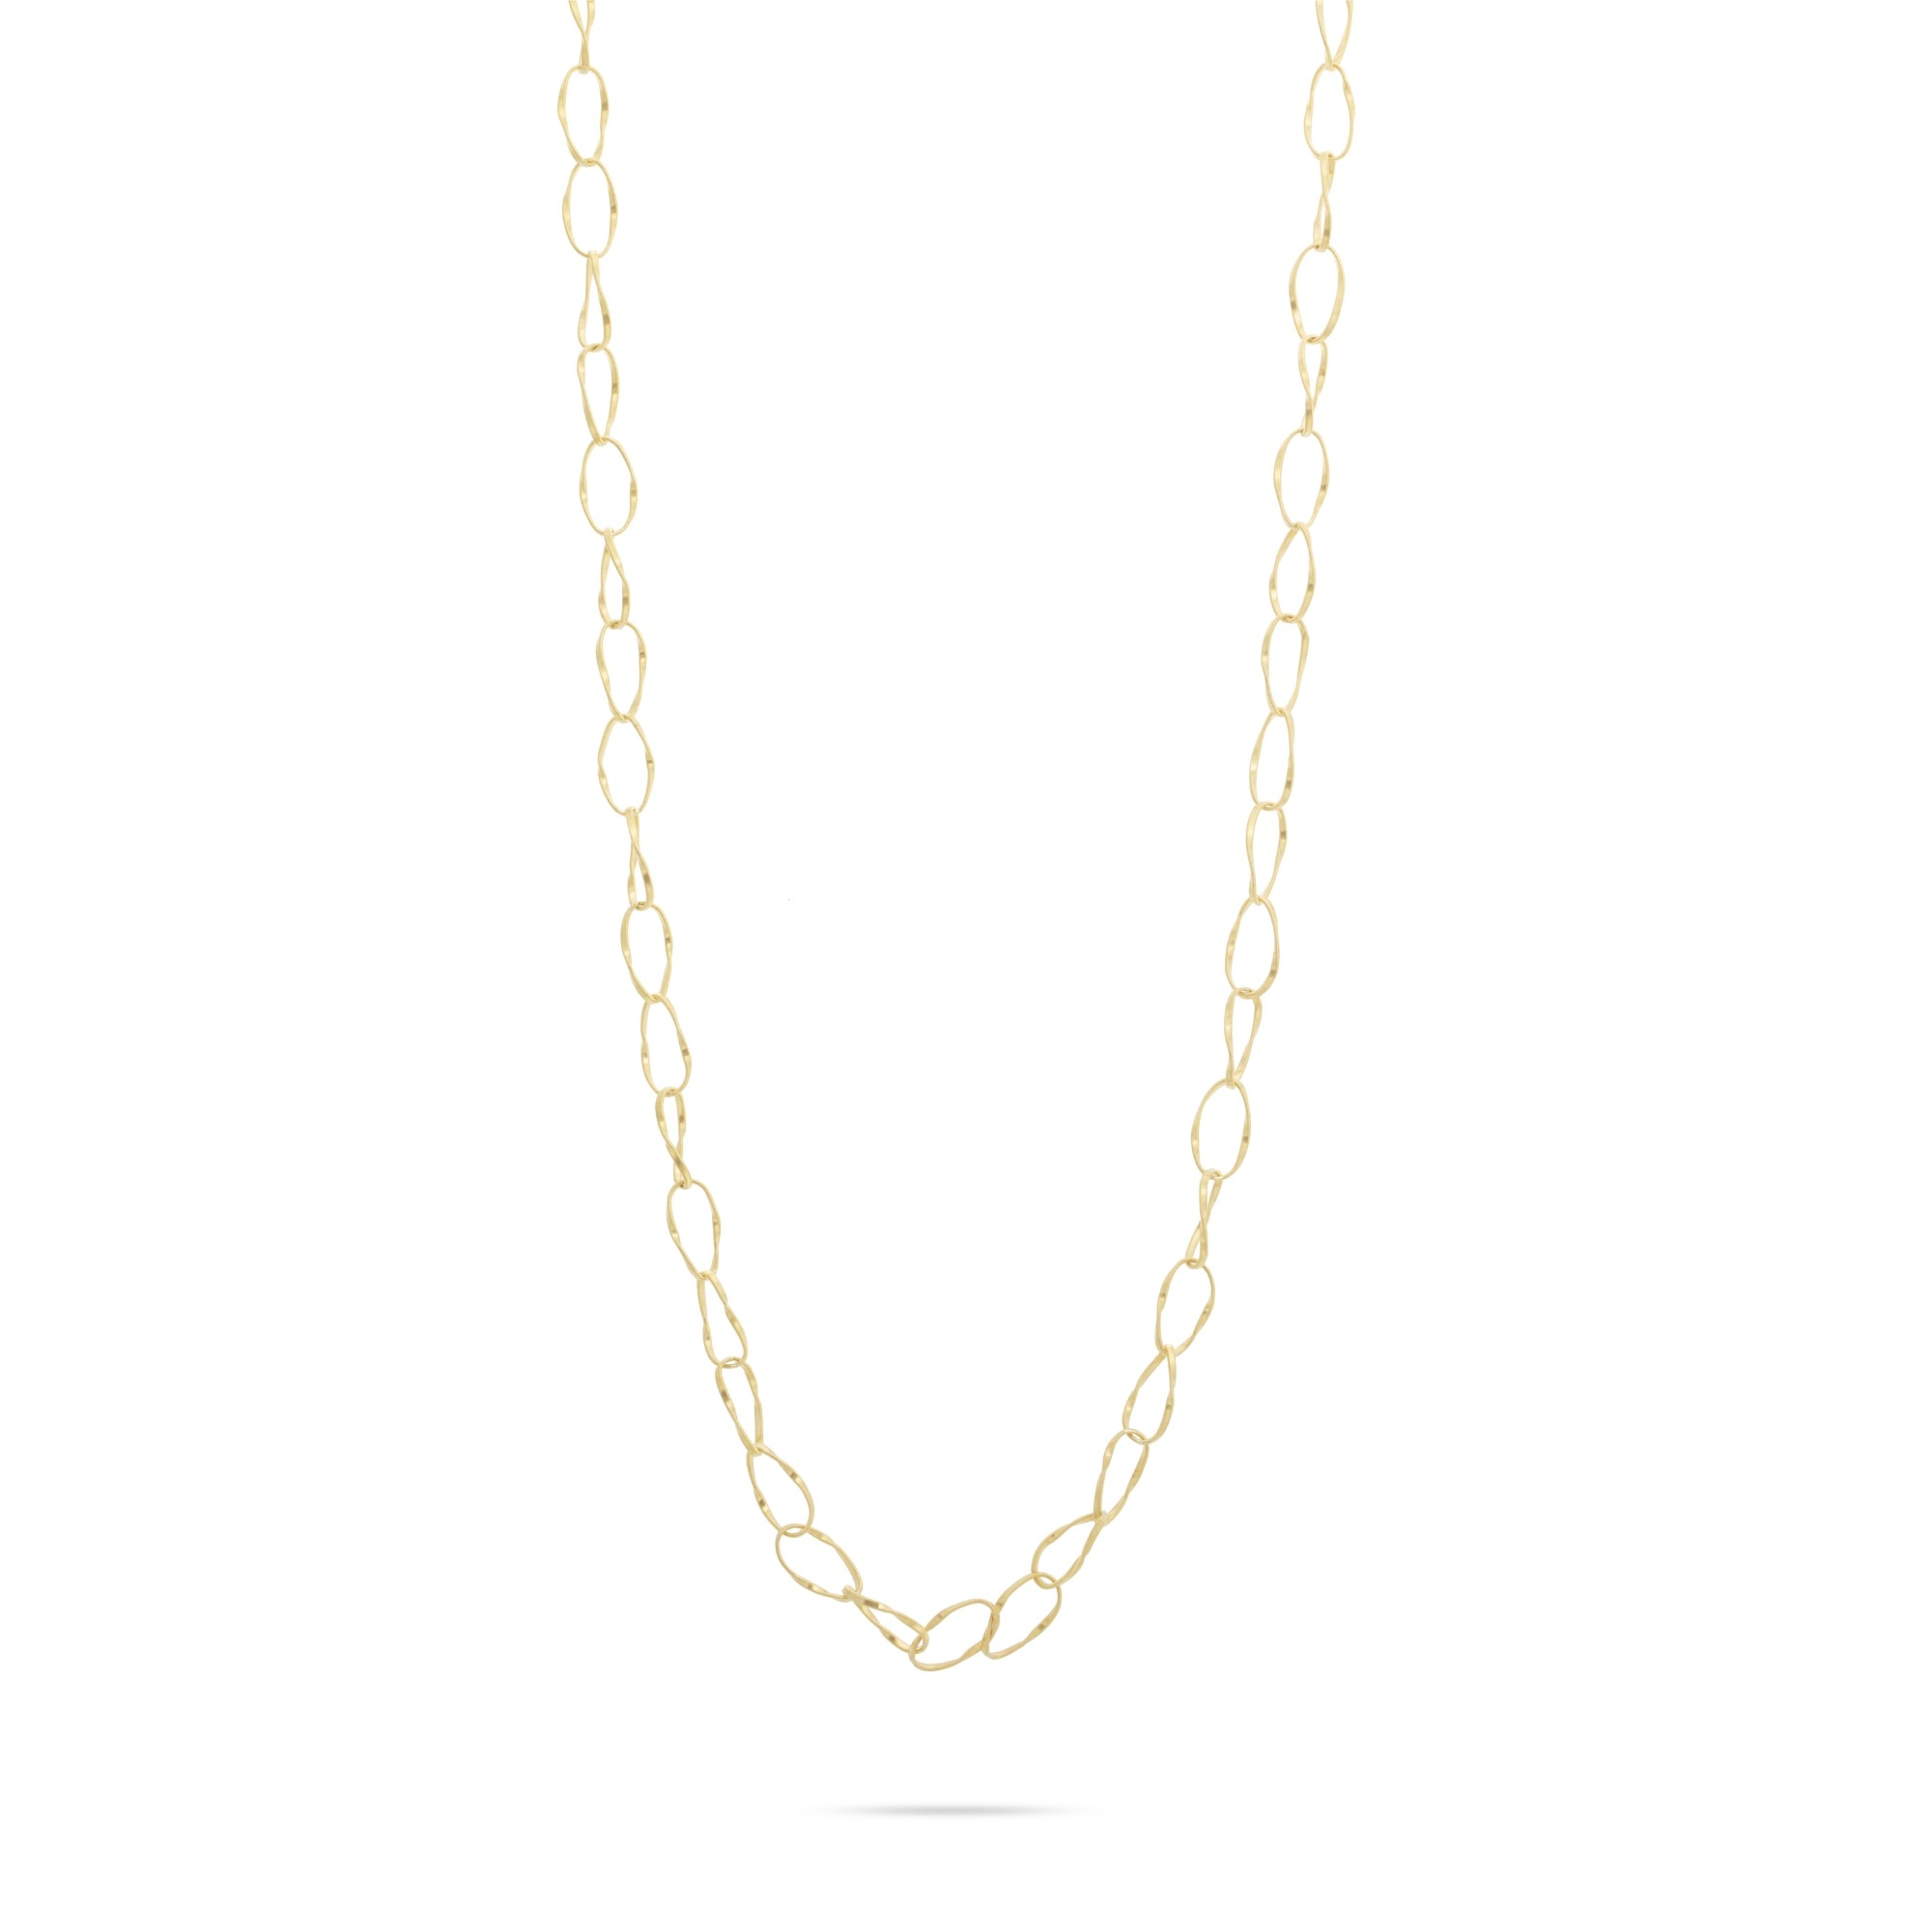 Marco Bicego 18K Yellow Gold    Gold Necklace CG779 Y